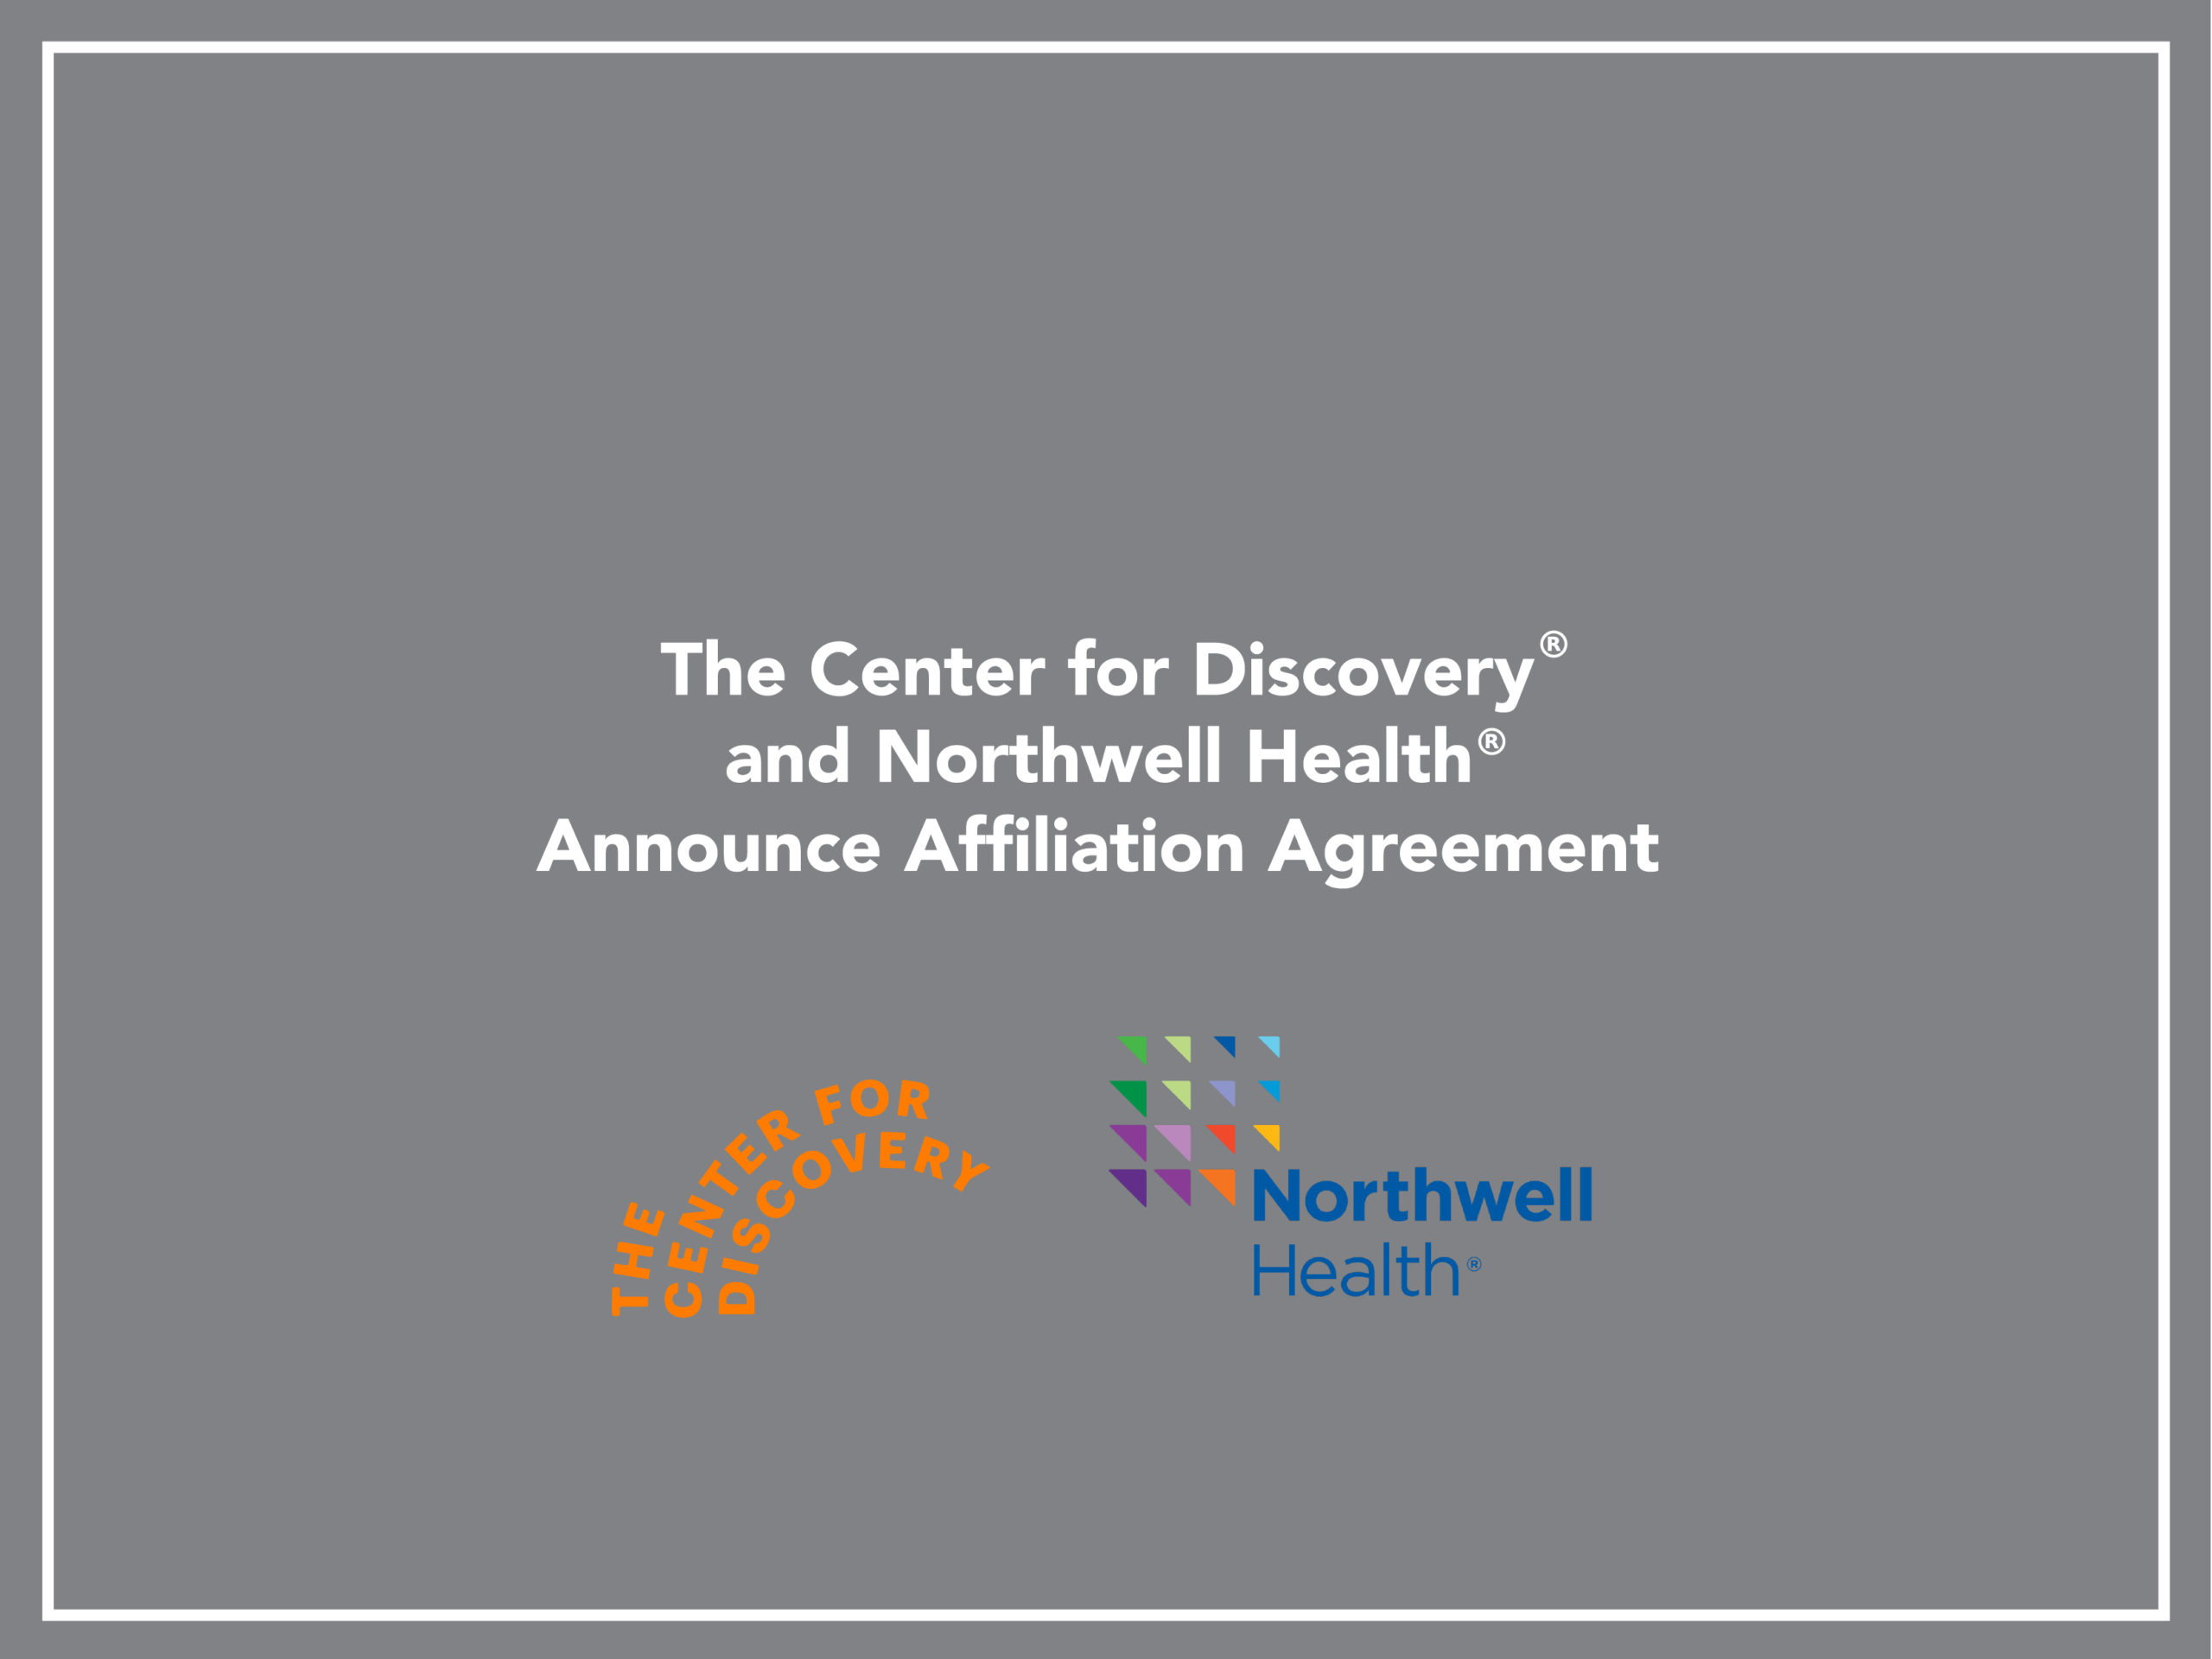 TCFD and Northwell Health Announce Affiliation Agreement